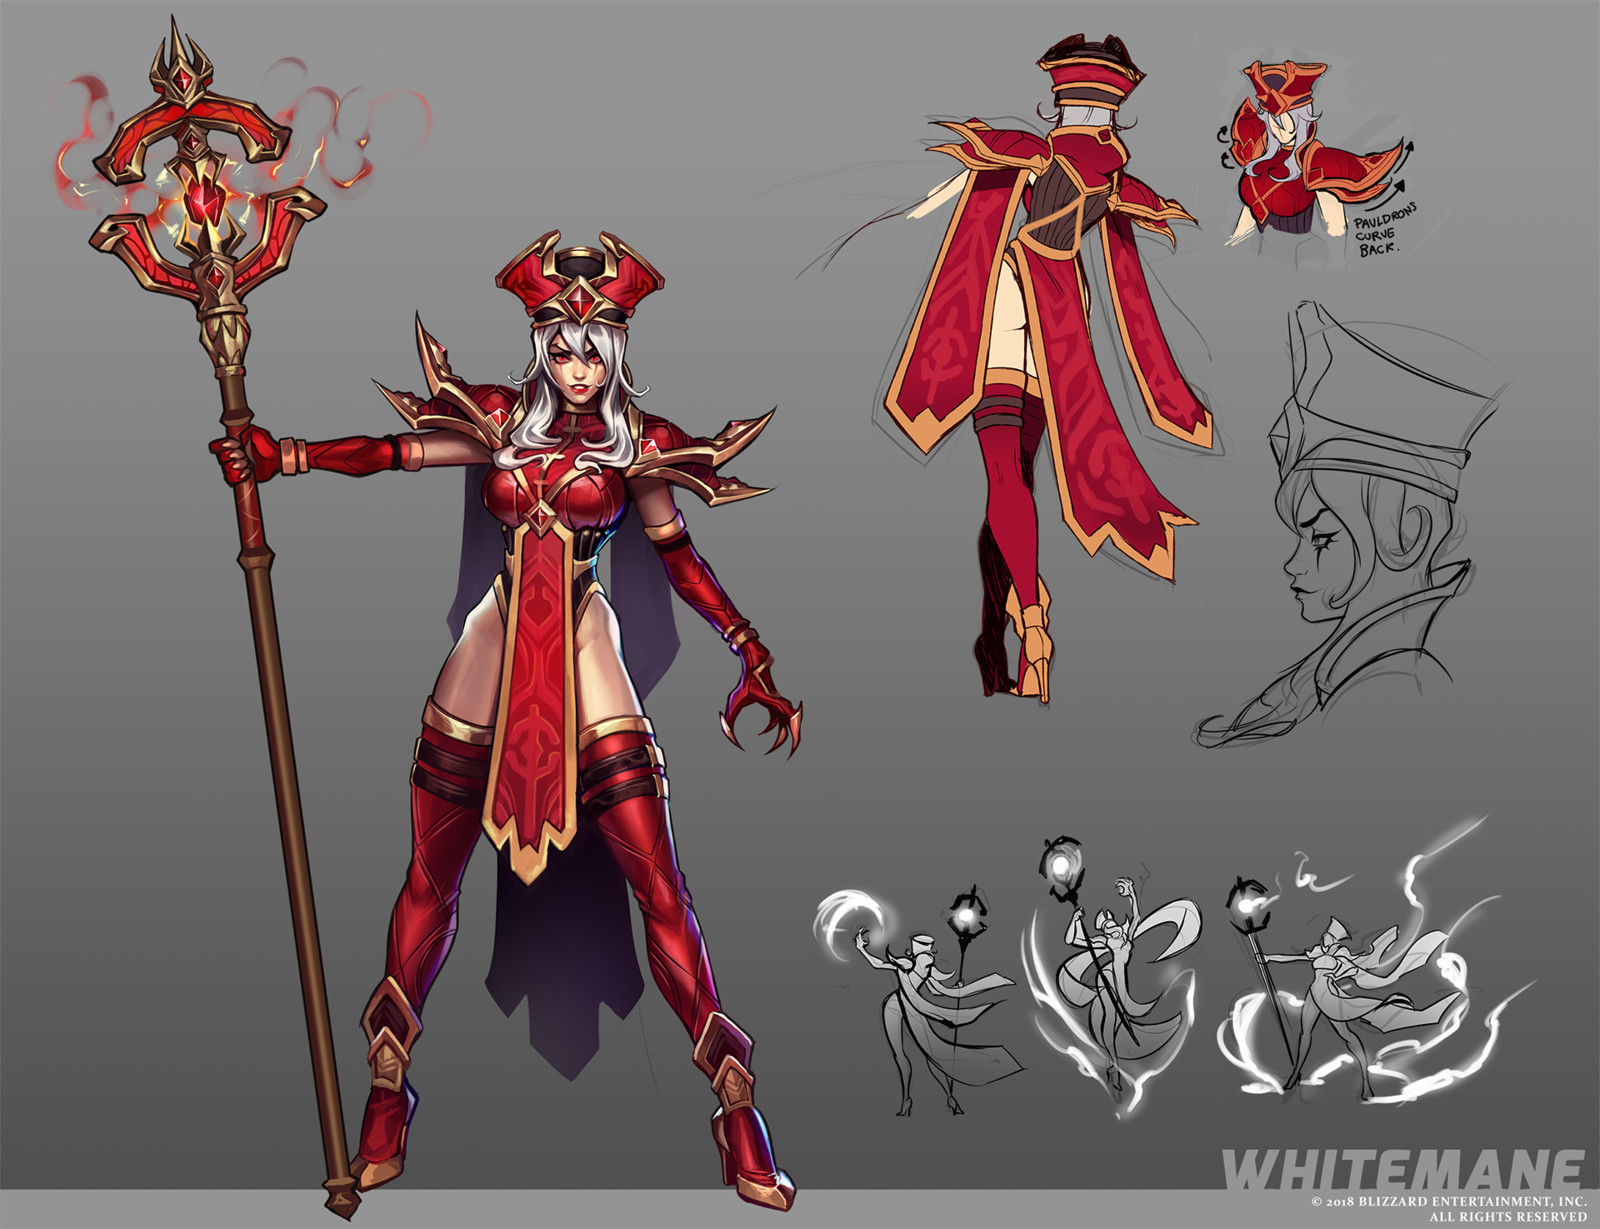 Whitemane Concept Art